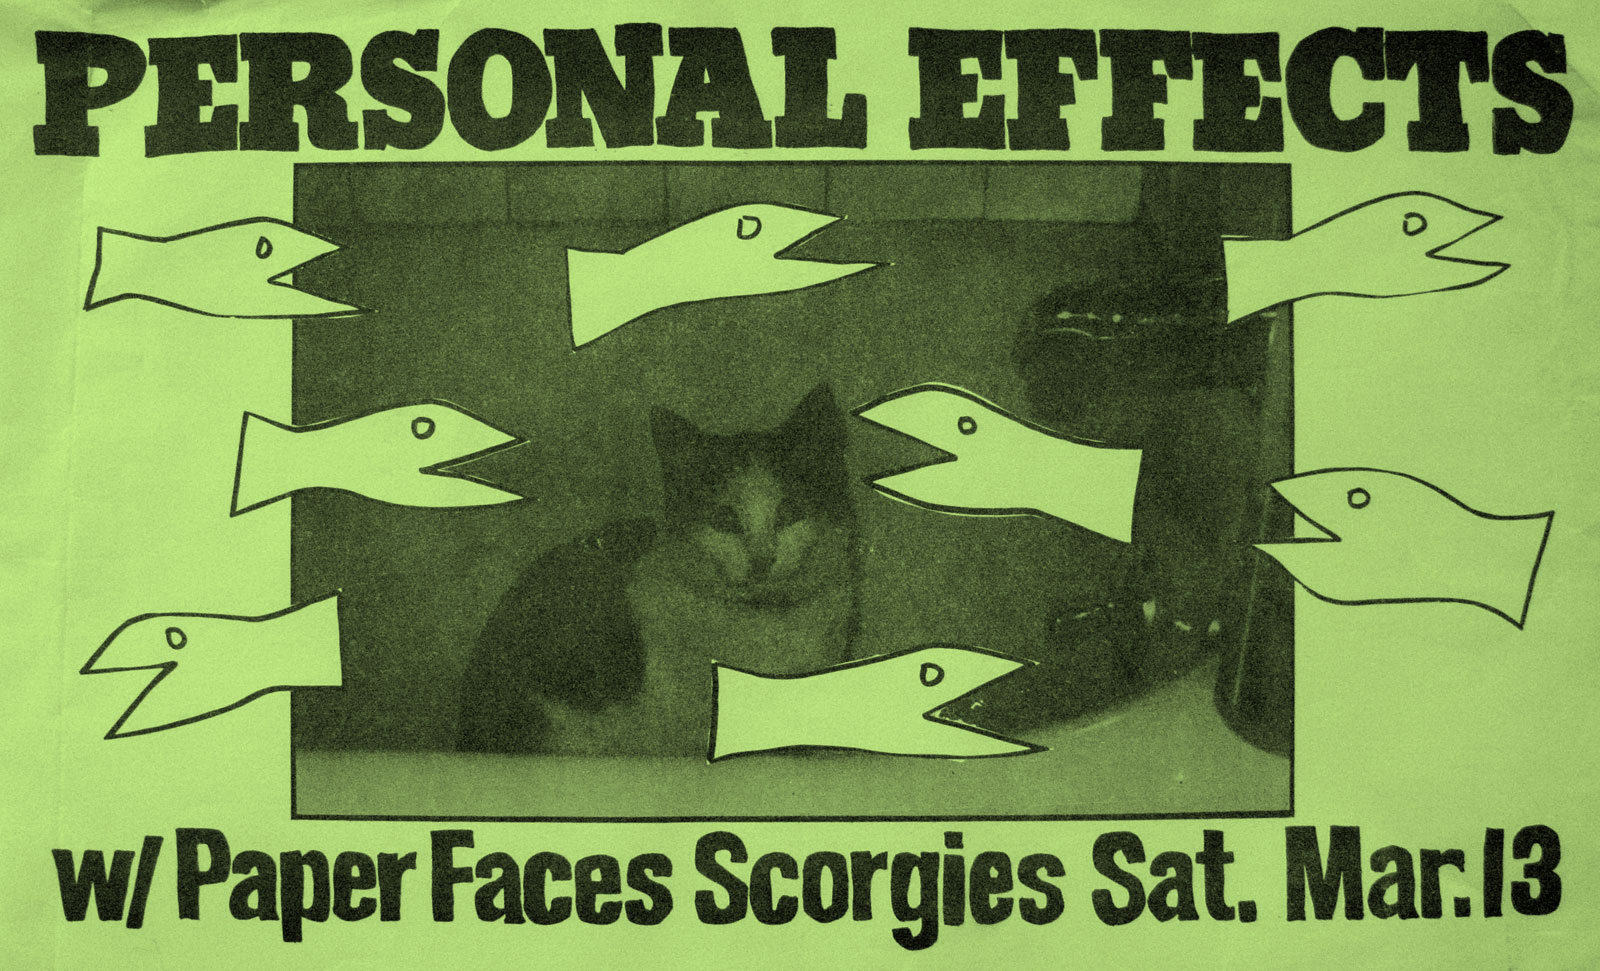 Poster for Personal Effects with Paper Faces at Scorgie's in Rochester, New York on Saturday 03.13.1982